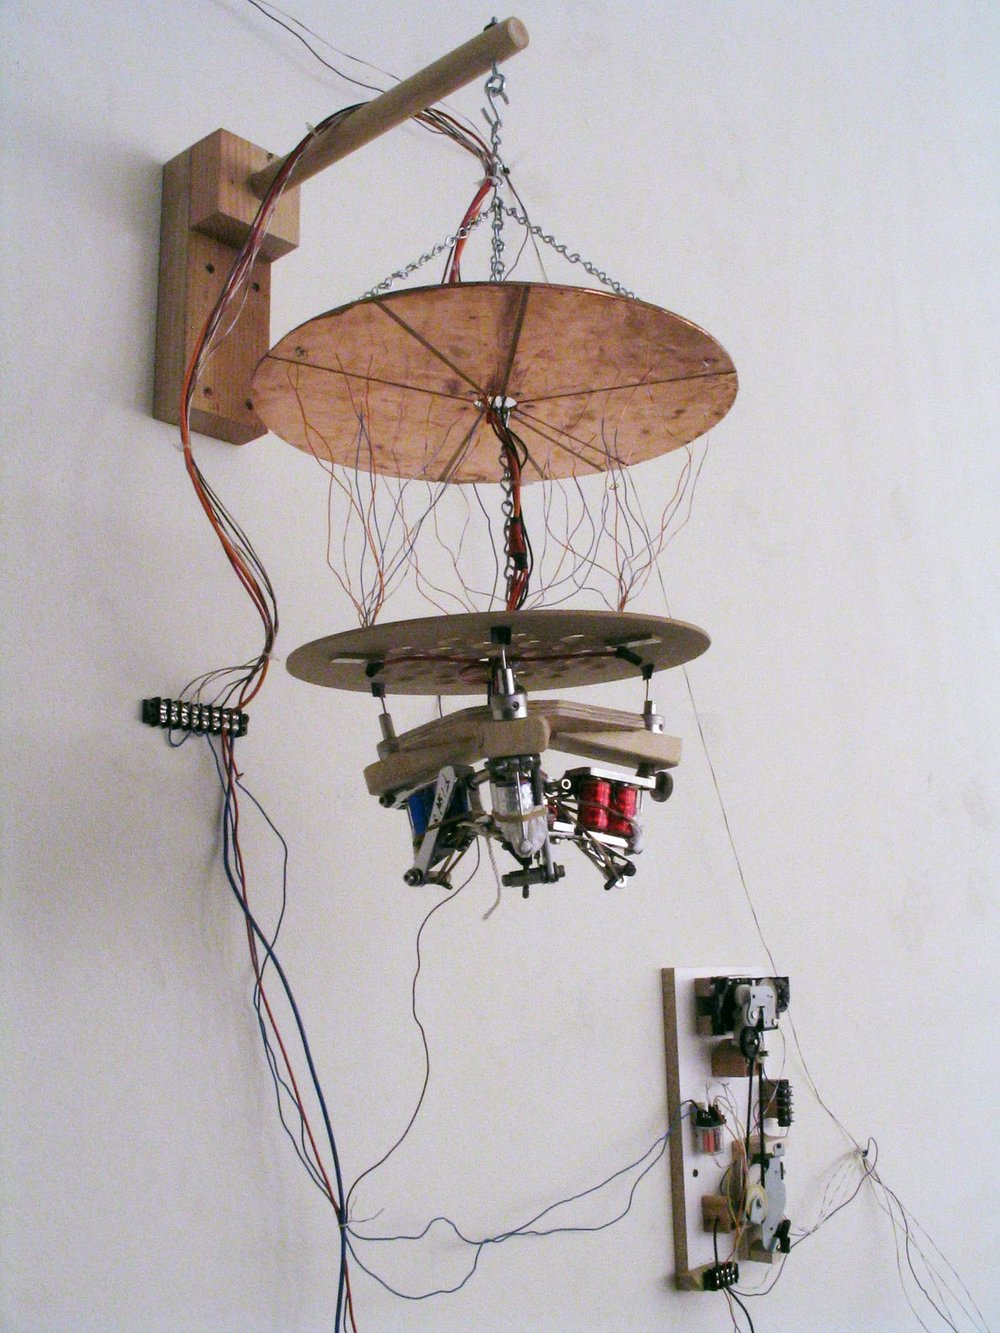 A self-generating chaotic switch. Upended tattoo machines vibrate the bottom plate and the attached wires. As the wires connect and disconnect from sections of the top copper platter, they send unpredictable on-off signals back to the tattoo machines and to other components of the installation.